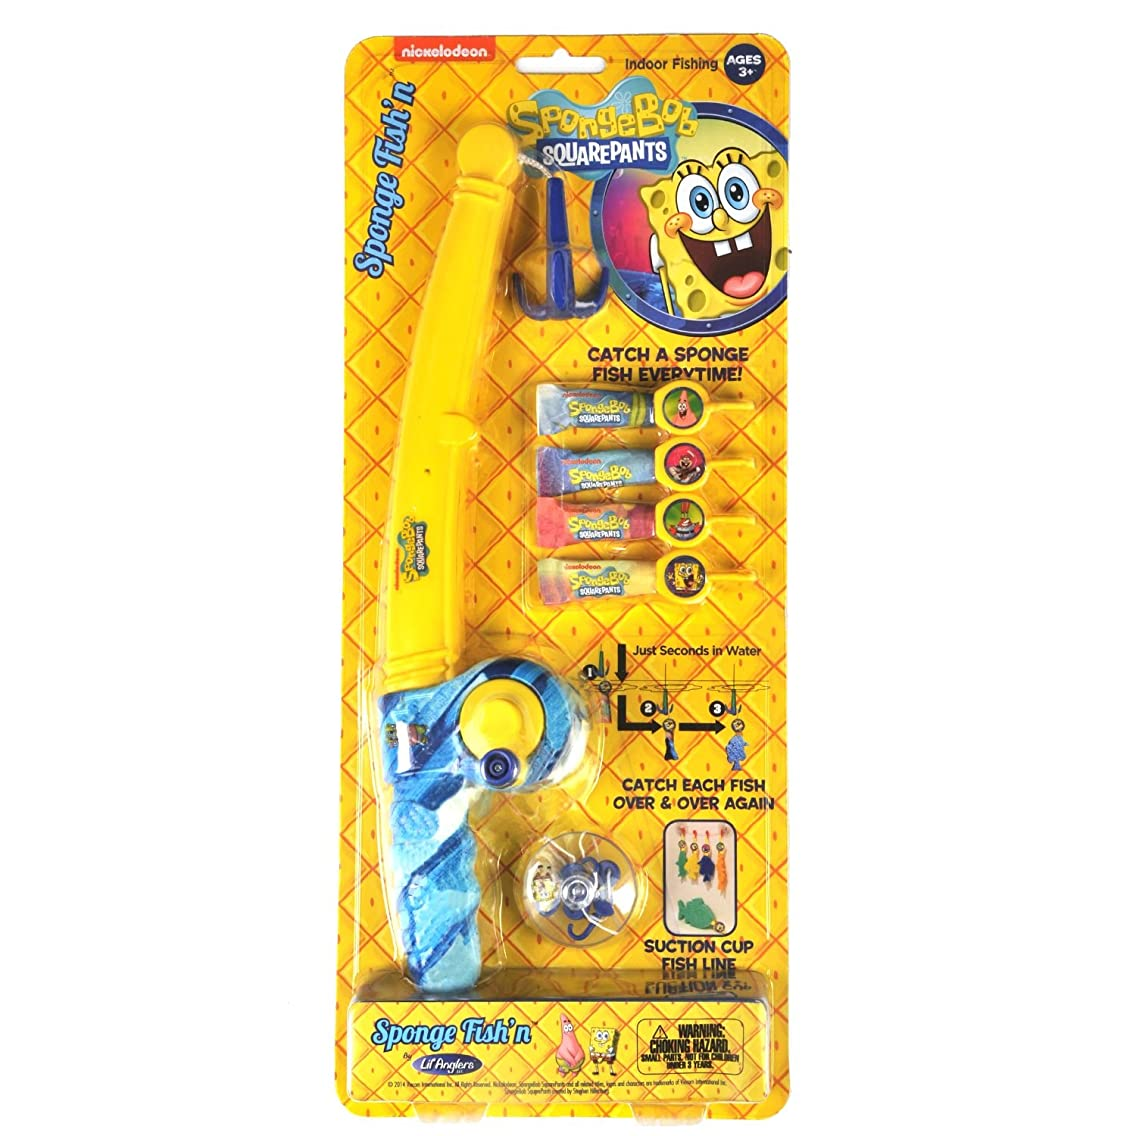 Kid Casters SpongeBob SquarePants Sponge Fish'n Indoor Toy Fishing Kit